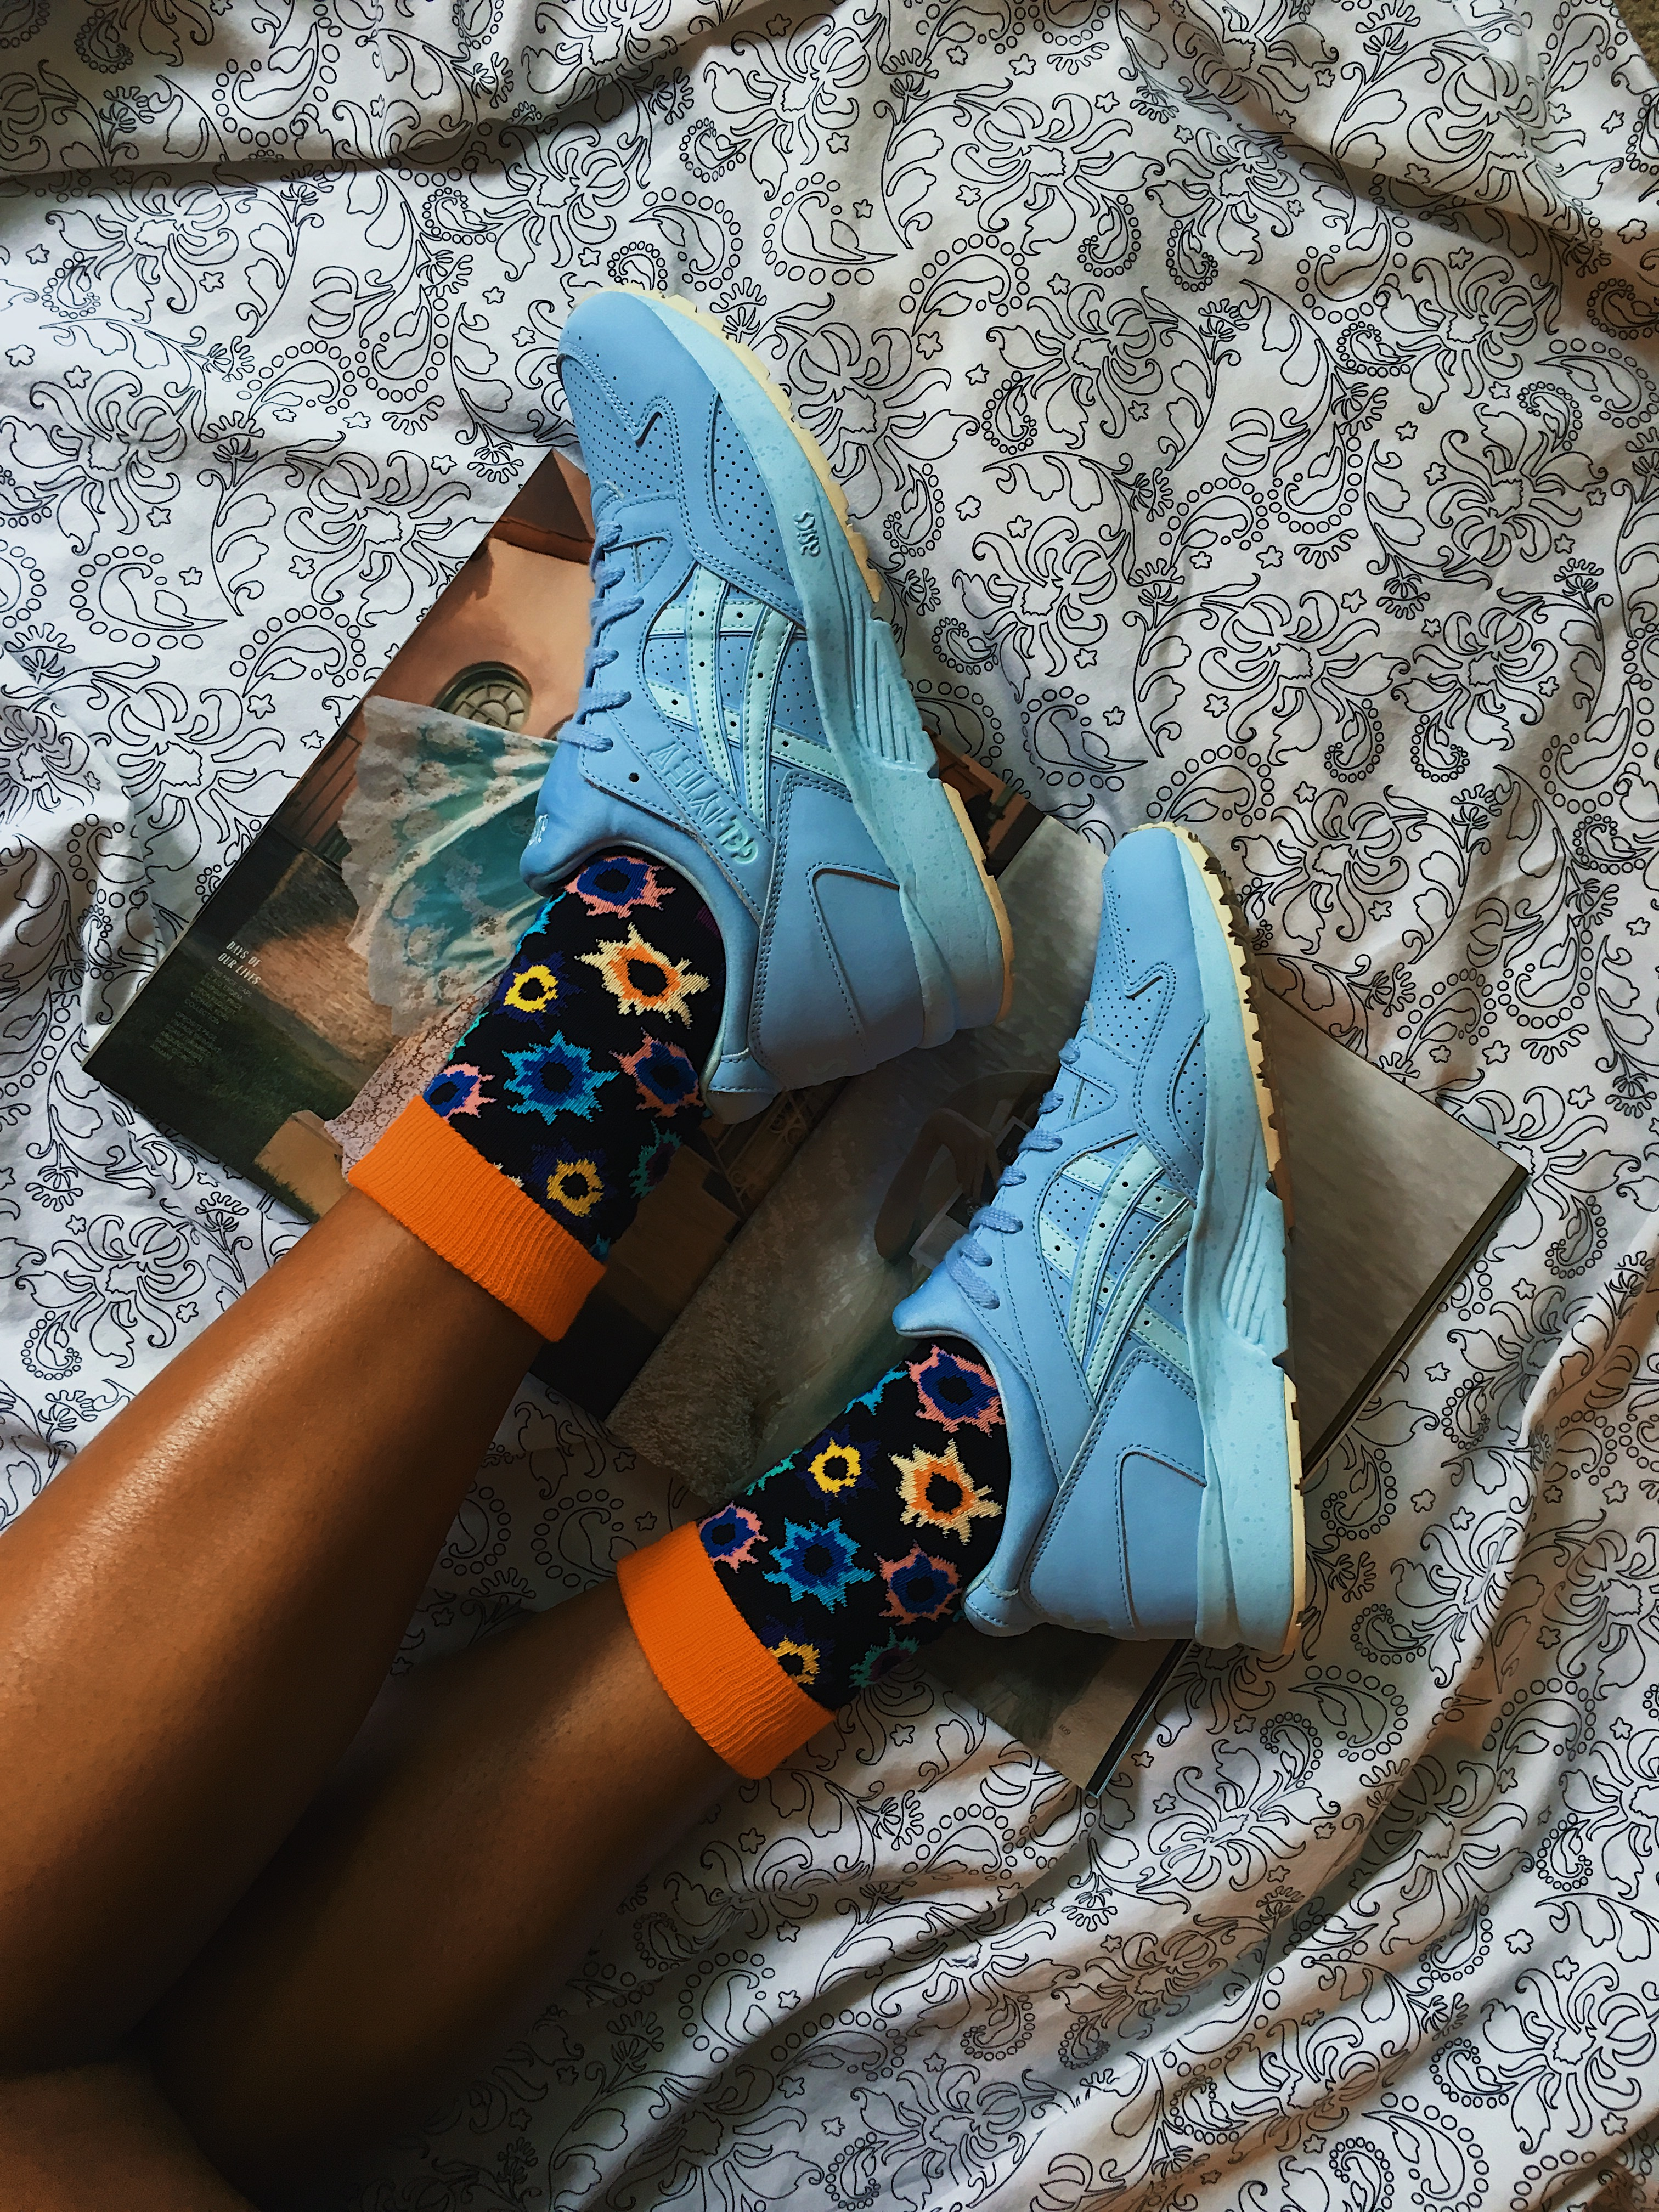 happy socks-colorful socks-asics tiger-gel lyte v-wear who you are-blue sneakers-lcm